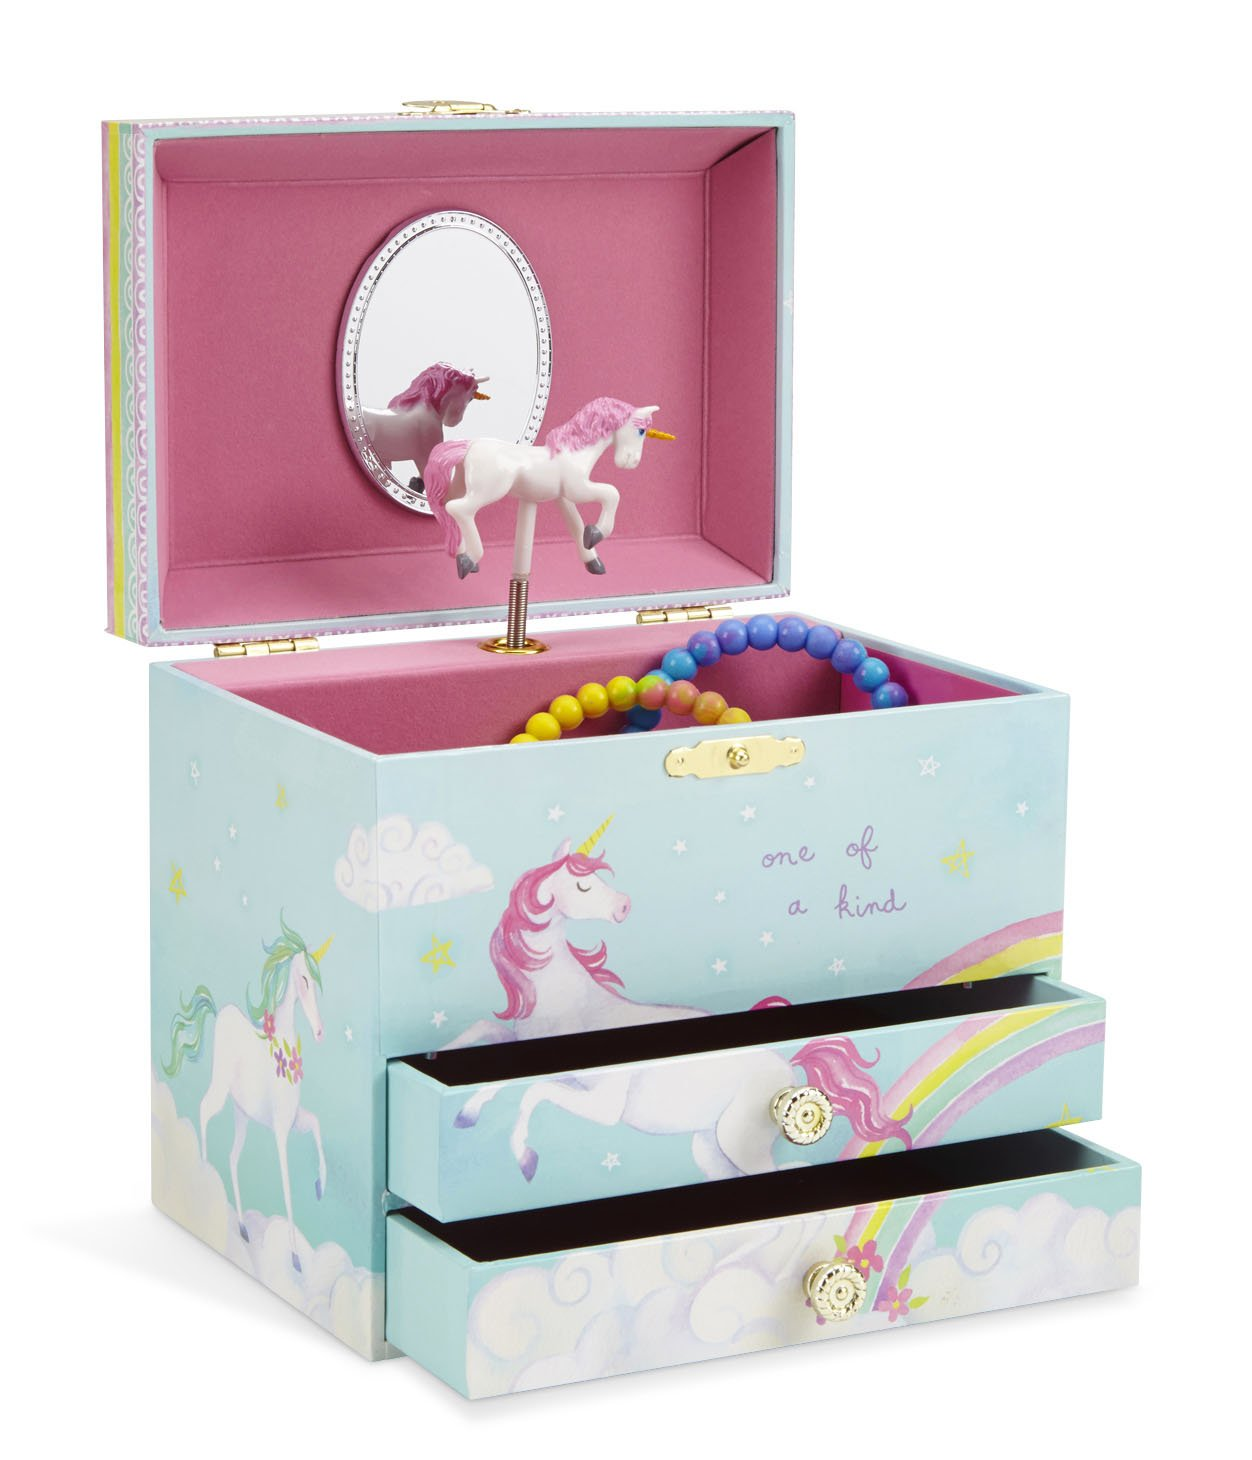 JewelKeeper Unicorn and Rainbow Musical Jewelry Box with 2 Pullout Drawers, Somewhere Over the Rainbow Tune